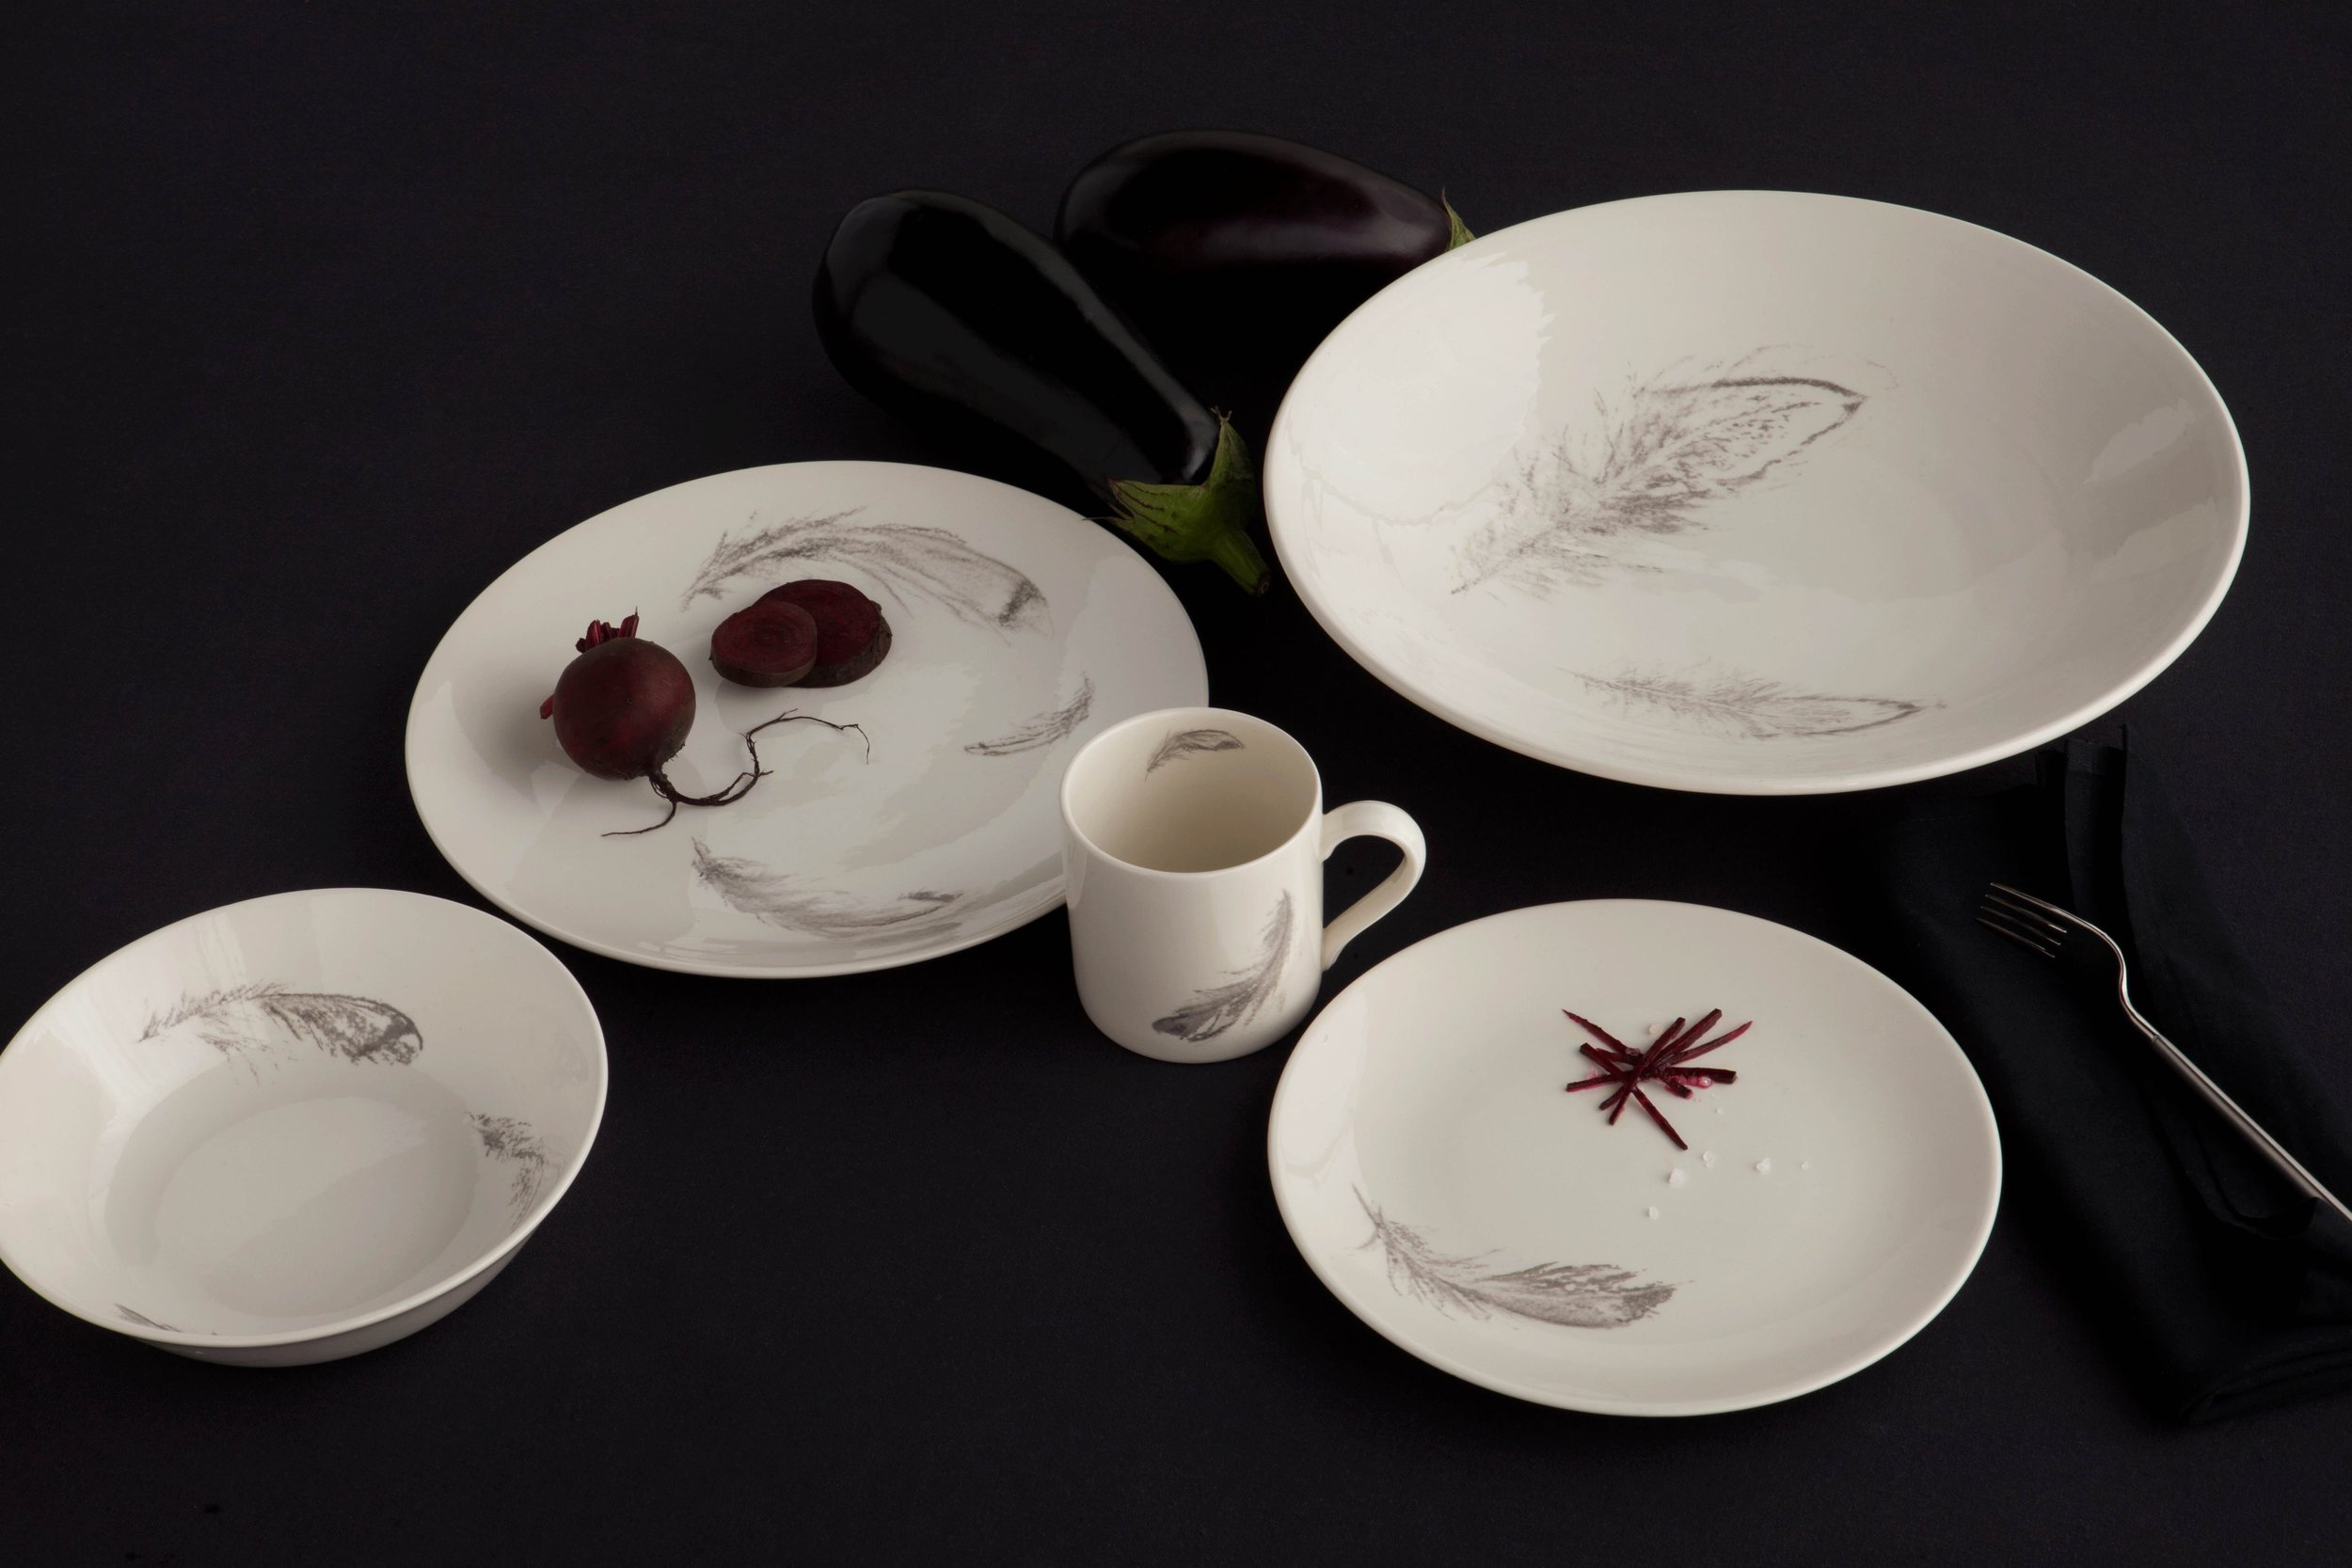 Abby Joy Designs PLUMES for 1882 Ltd., fine creamware earthenware tableware collection of bowls, plates & mug with feather motif, made in the Stoke on Trent Potteries, inspired by Somerset.